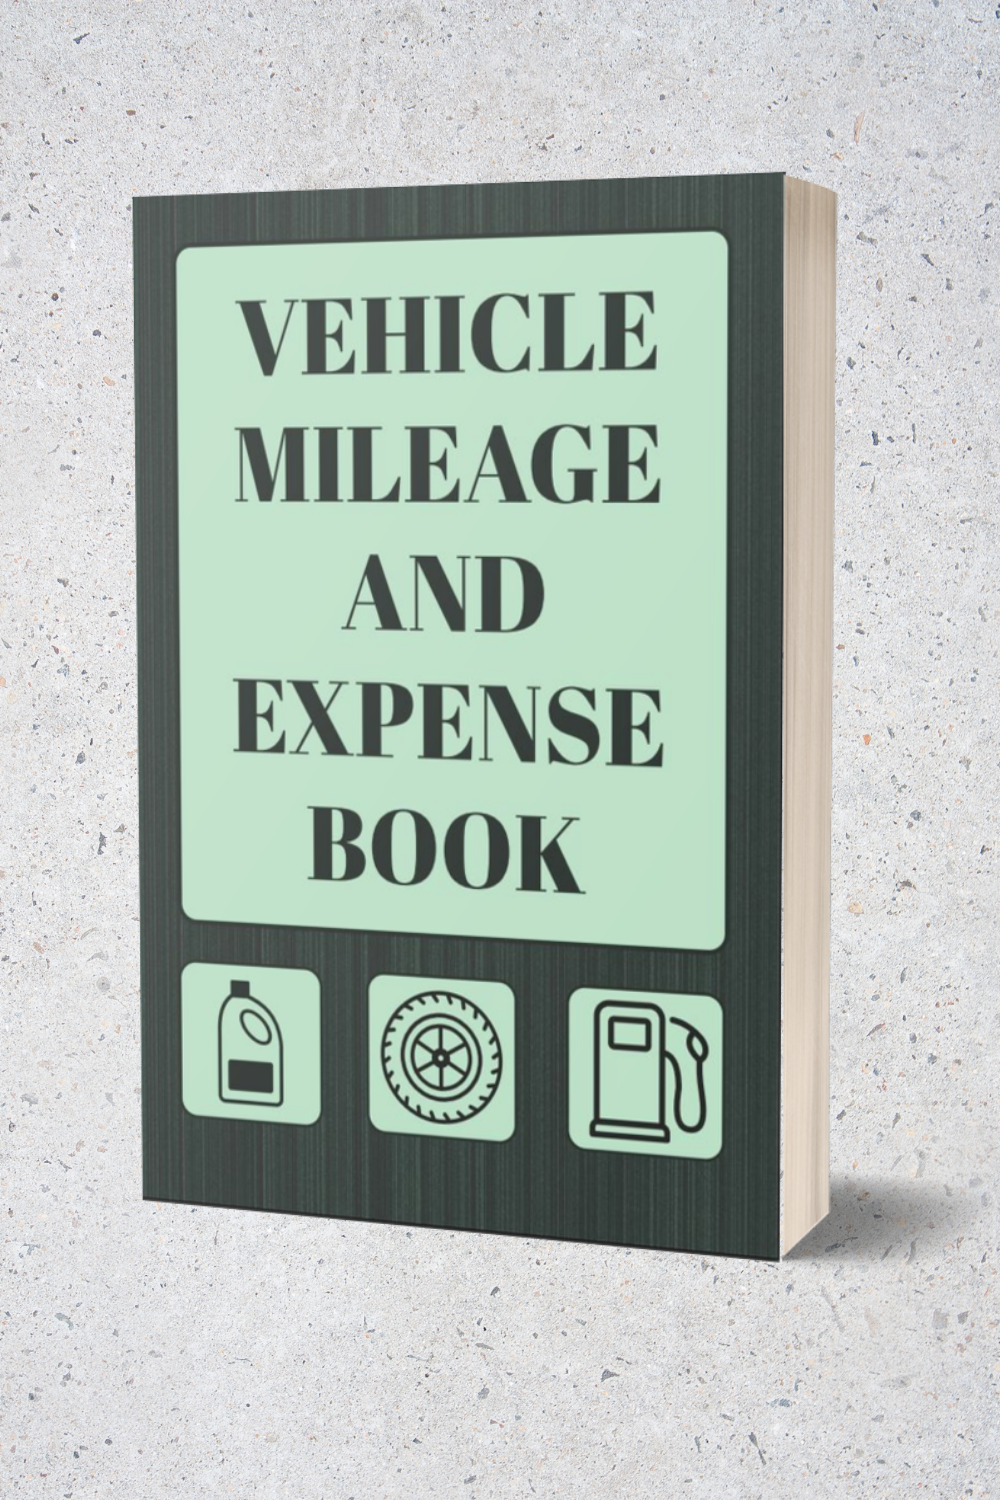 Vehicle Mileage And Expense Book Auto Mileage Log And Expense Record In 2020 Books Mileage Notebooks Journals